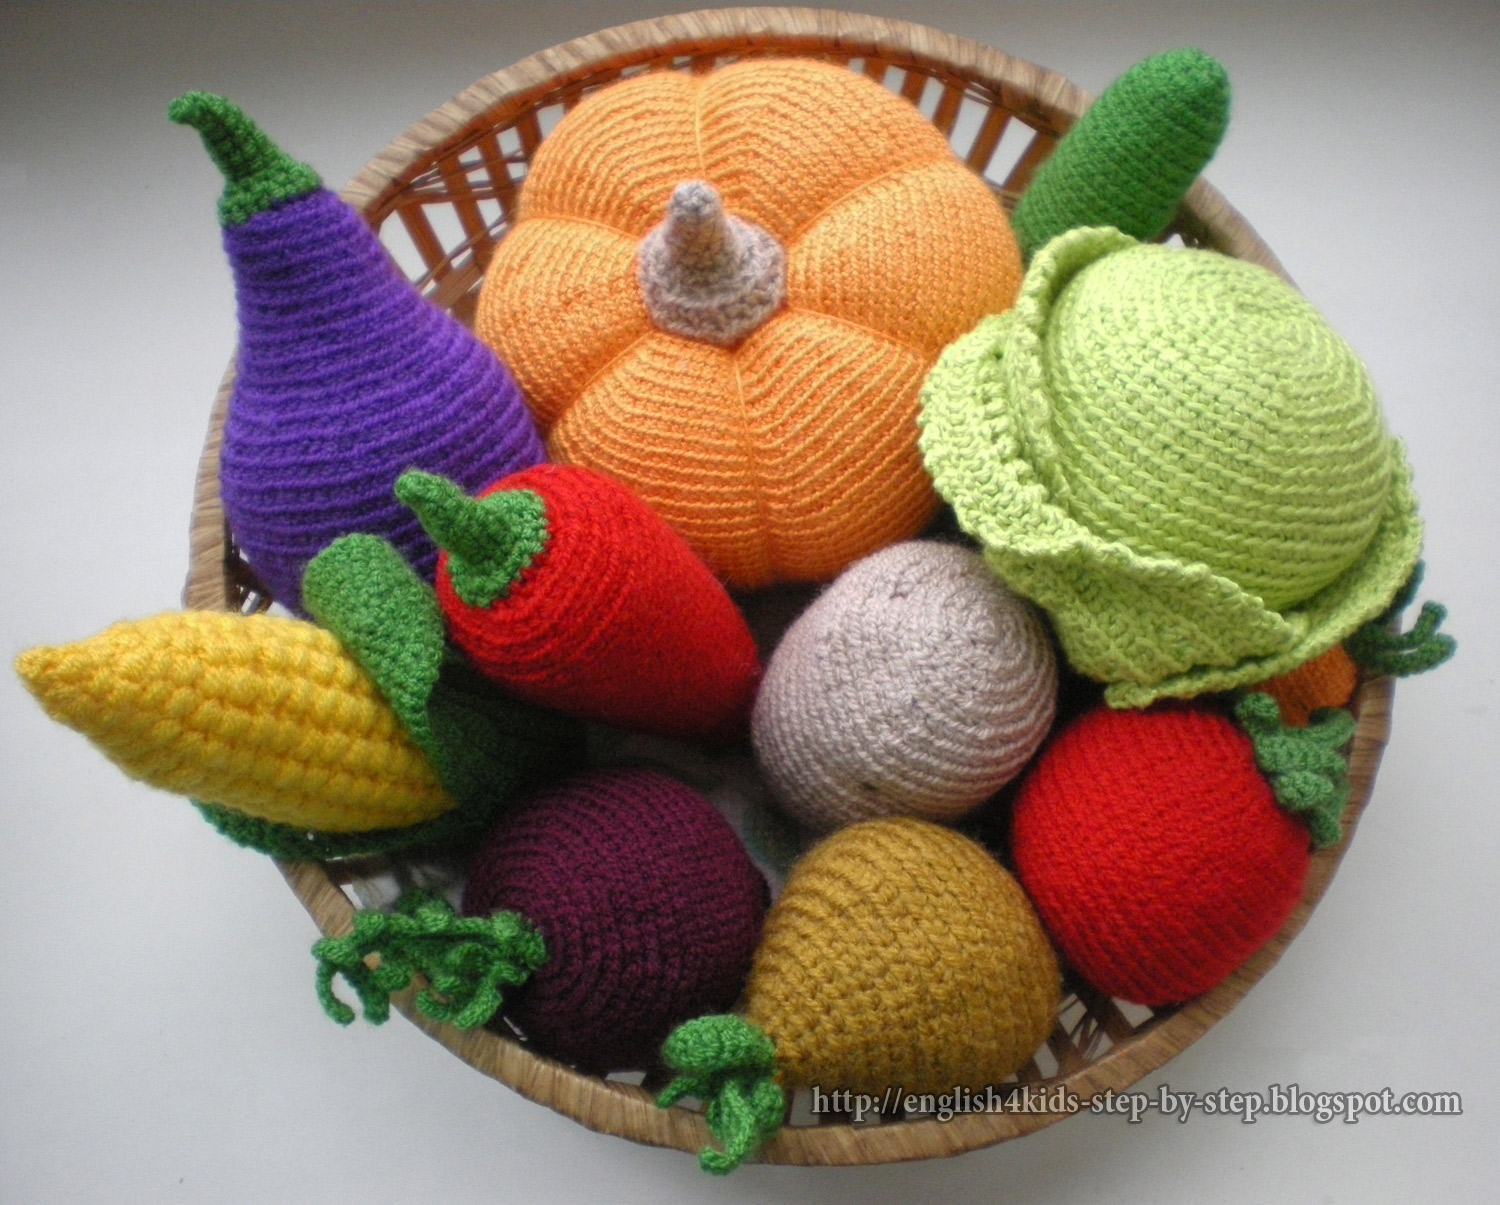 Crochet Patterns Vegetables Free : the set of 11 crocheted vegetables crochet carrot length 10cm